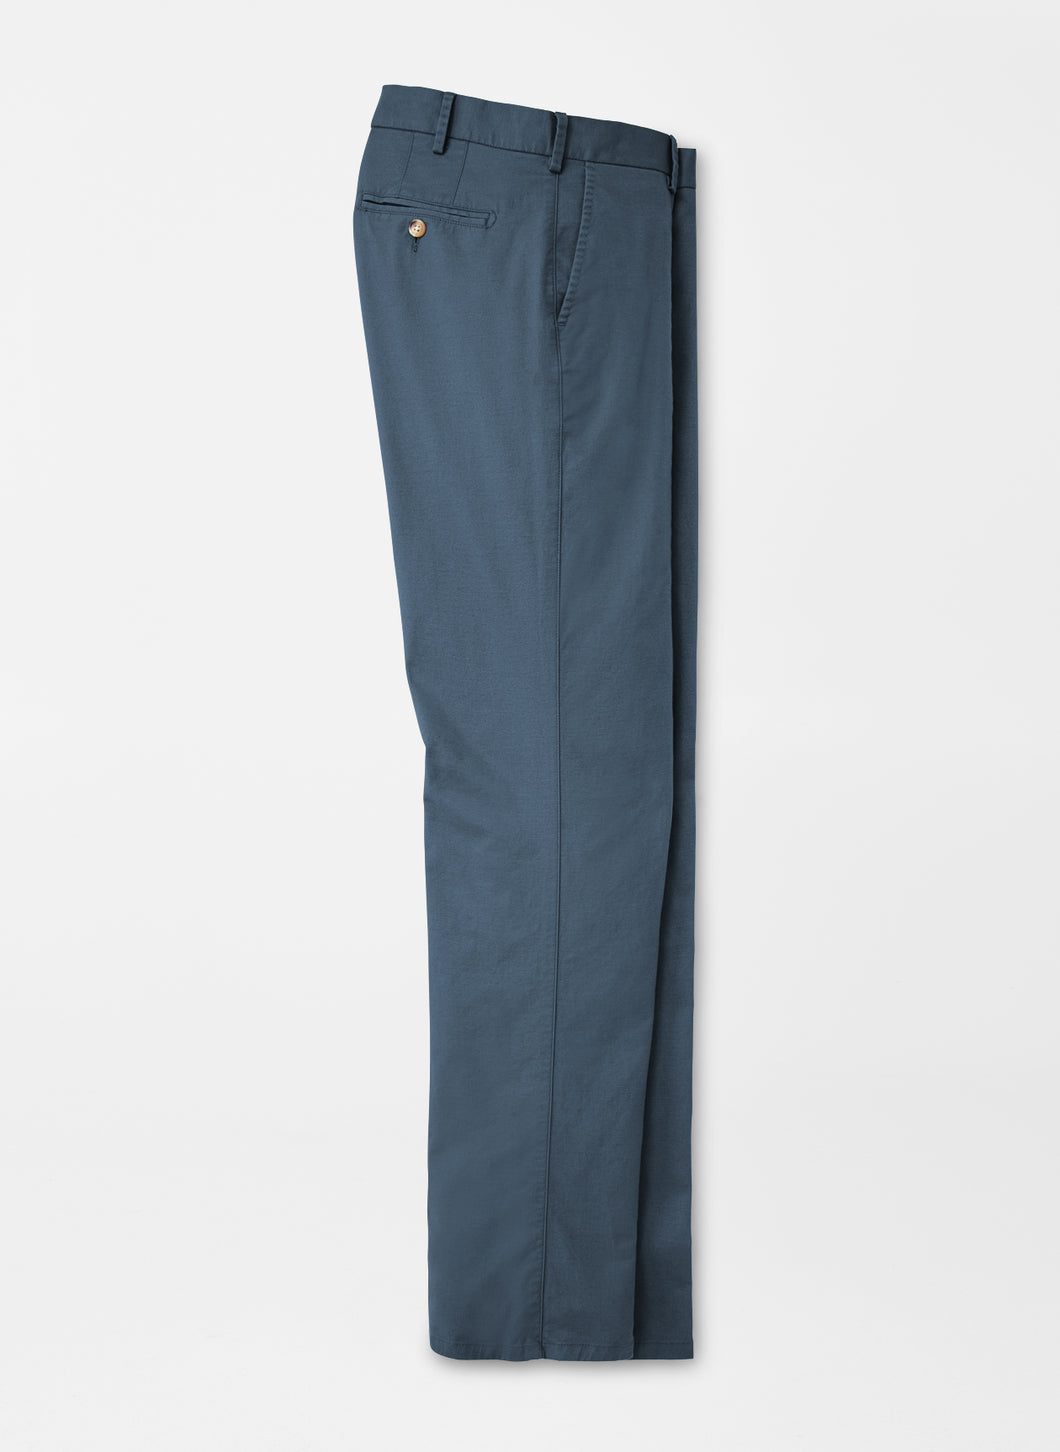 Peter Millar Soft Touch Twill Flat Front Trouser in Navy